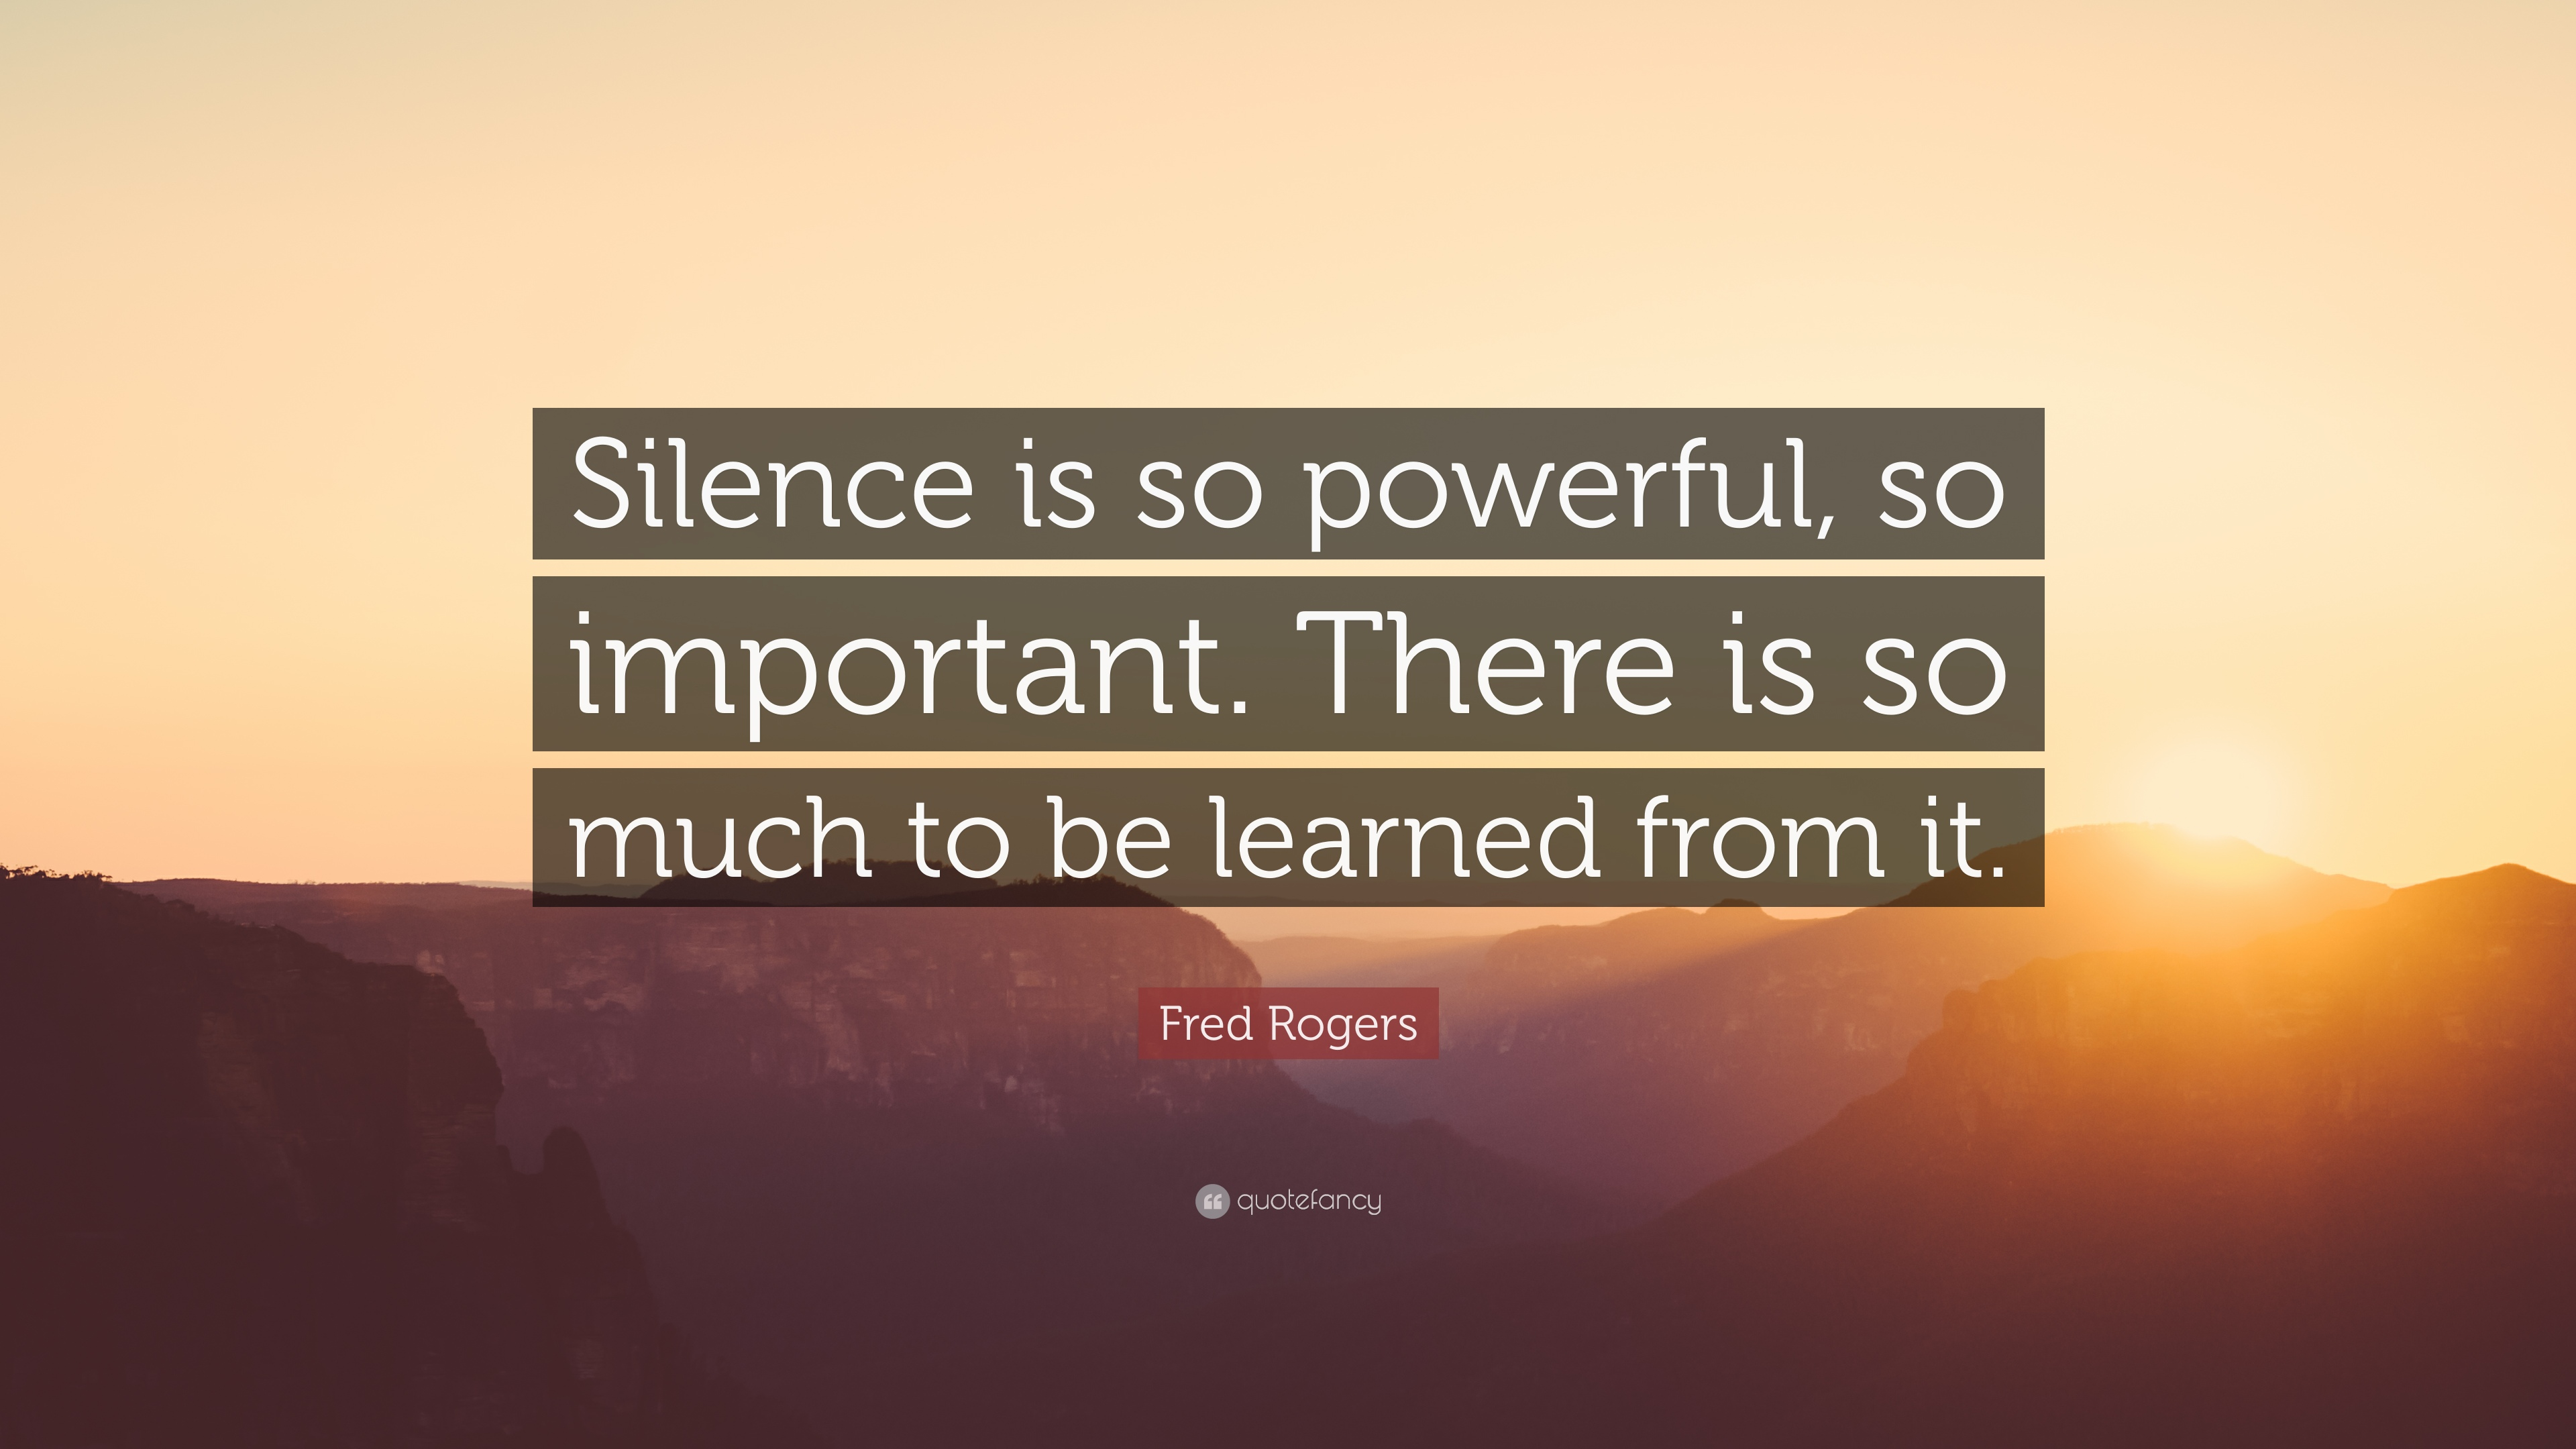 Fred Rogers Quote Silence Is So Powerful So Important There Is So Much To Be Learned From It 10 Wallpapers Quotefancy